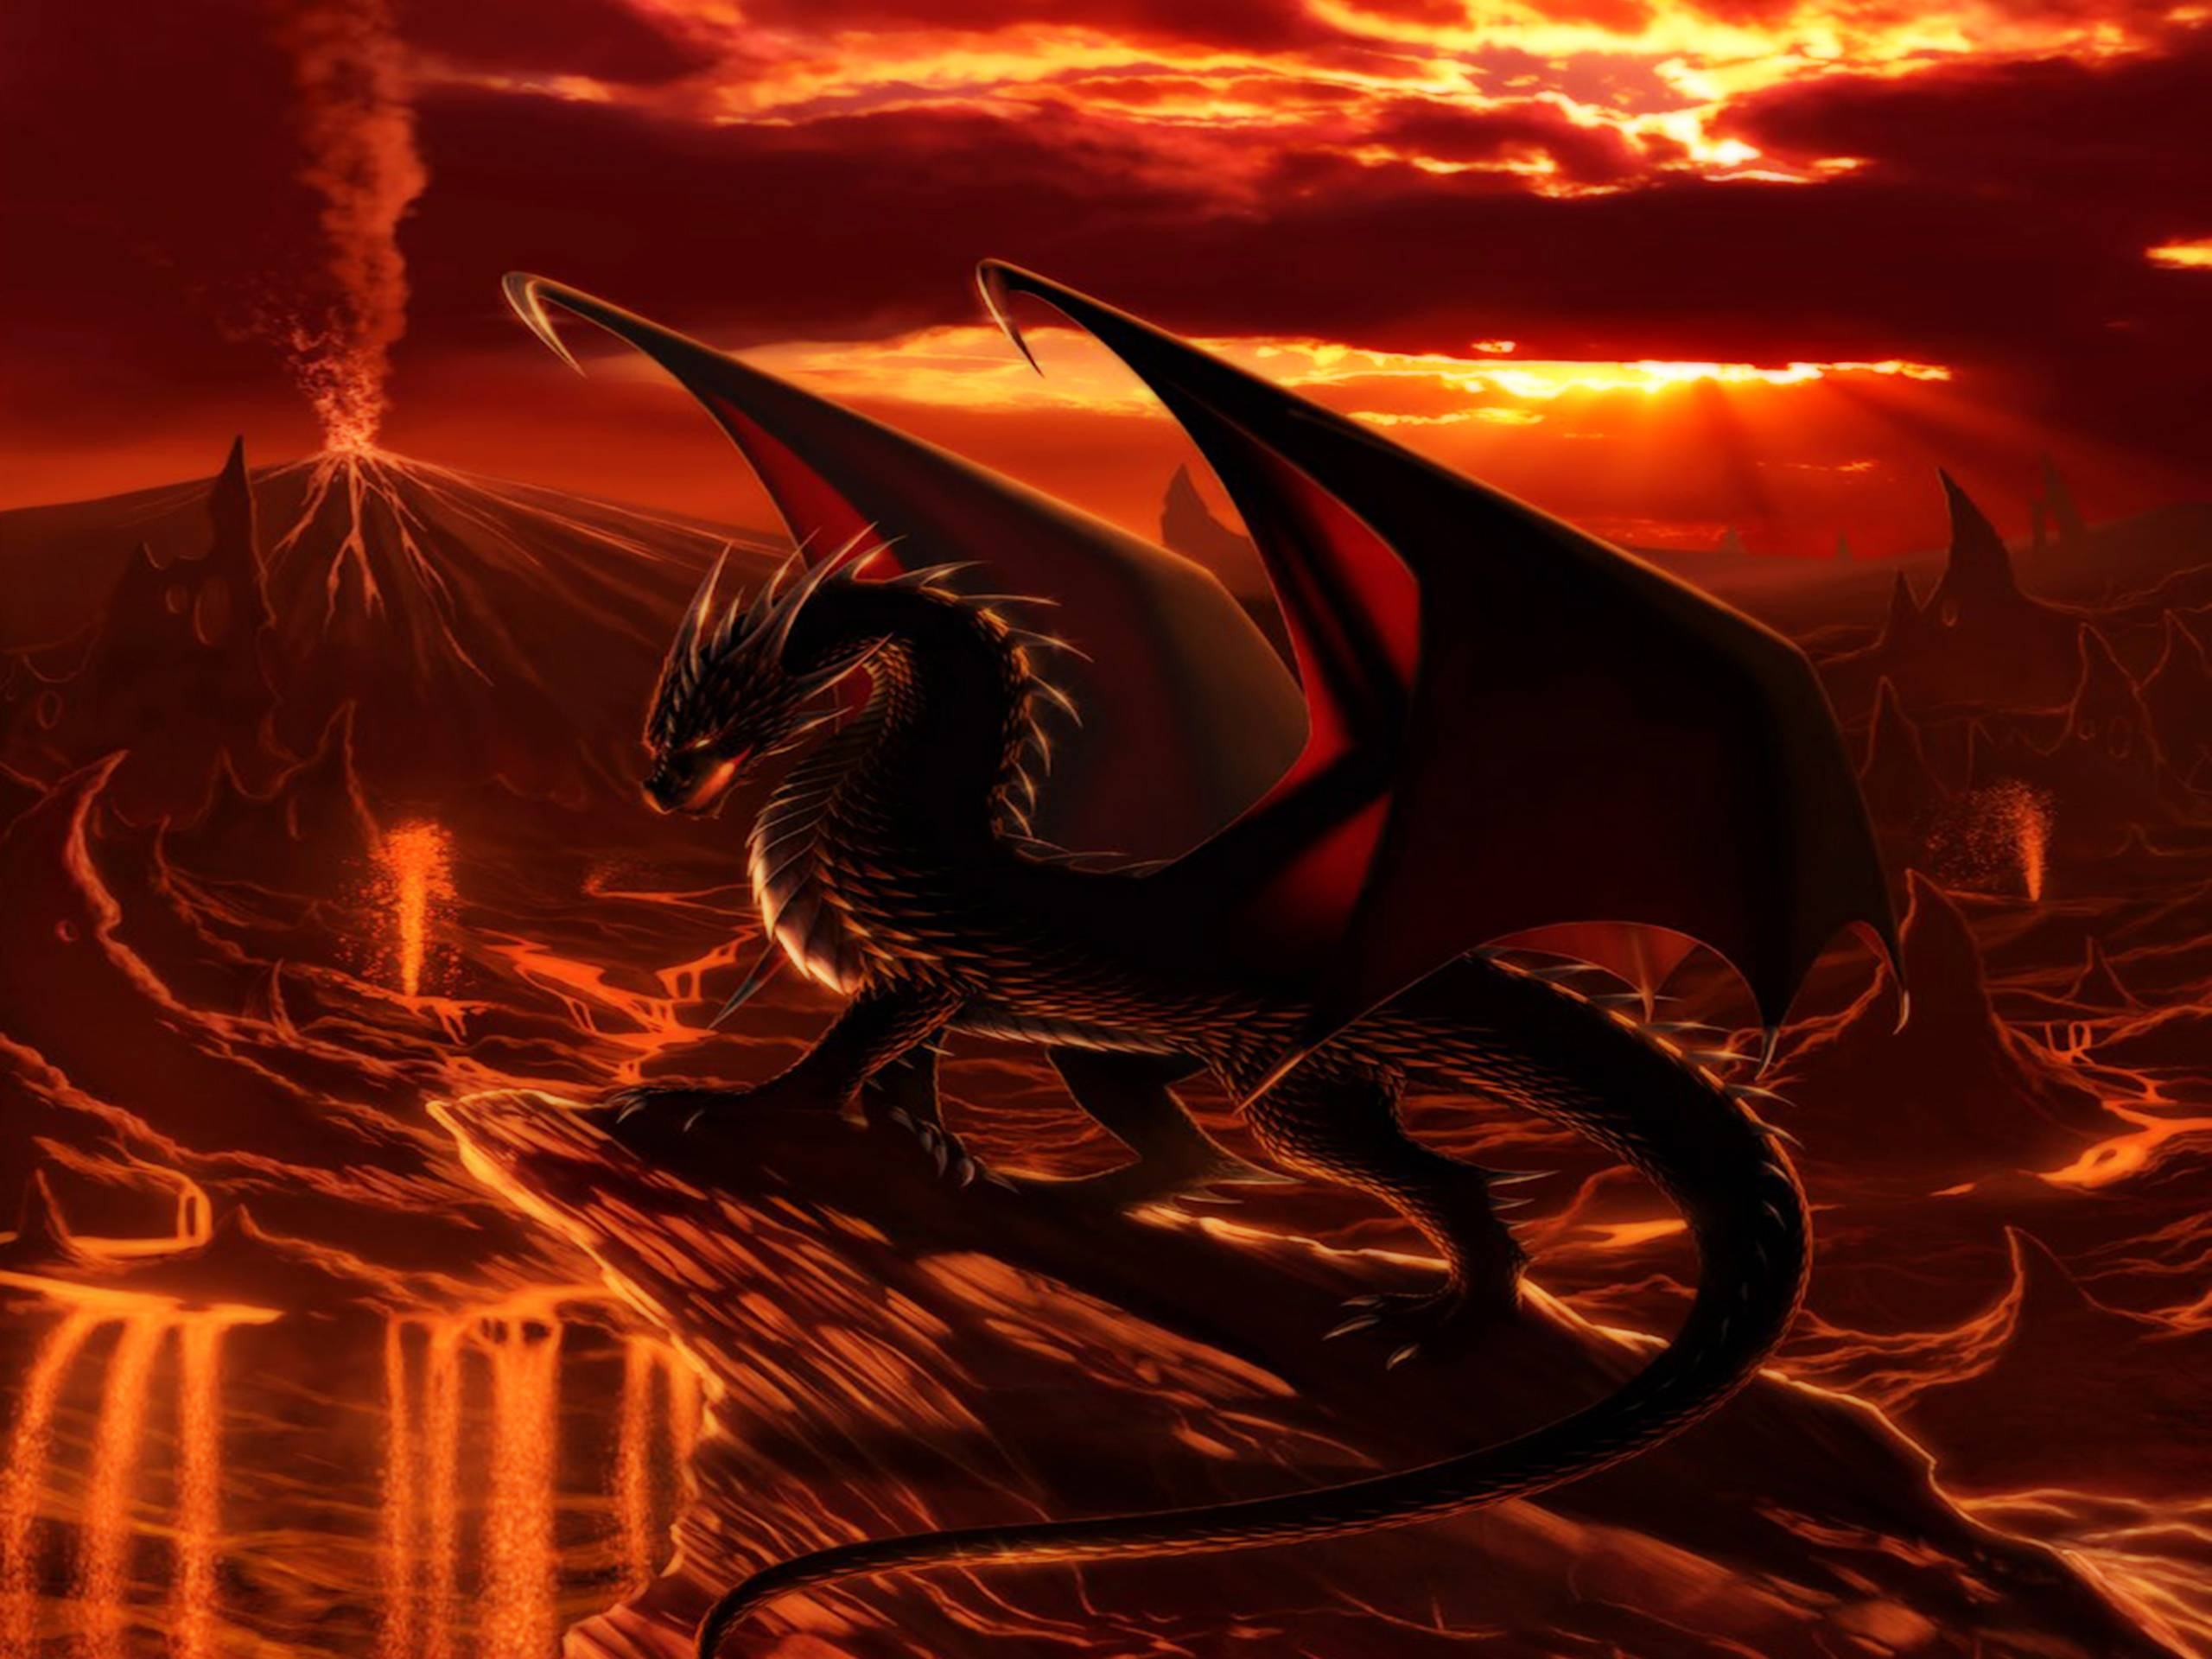 Fire Dragon Wallpapers 2560x1920